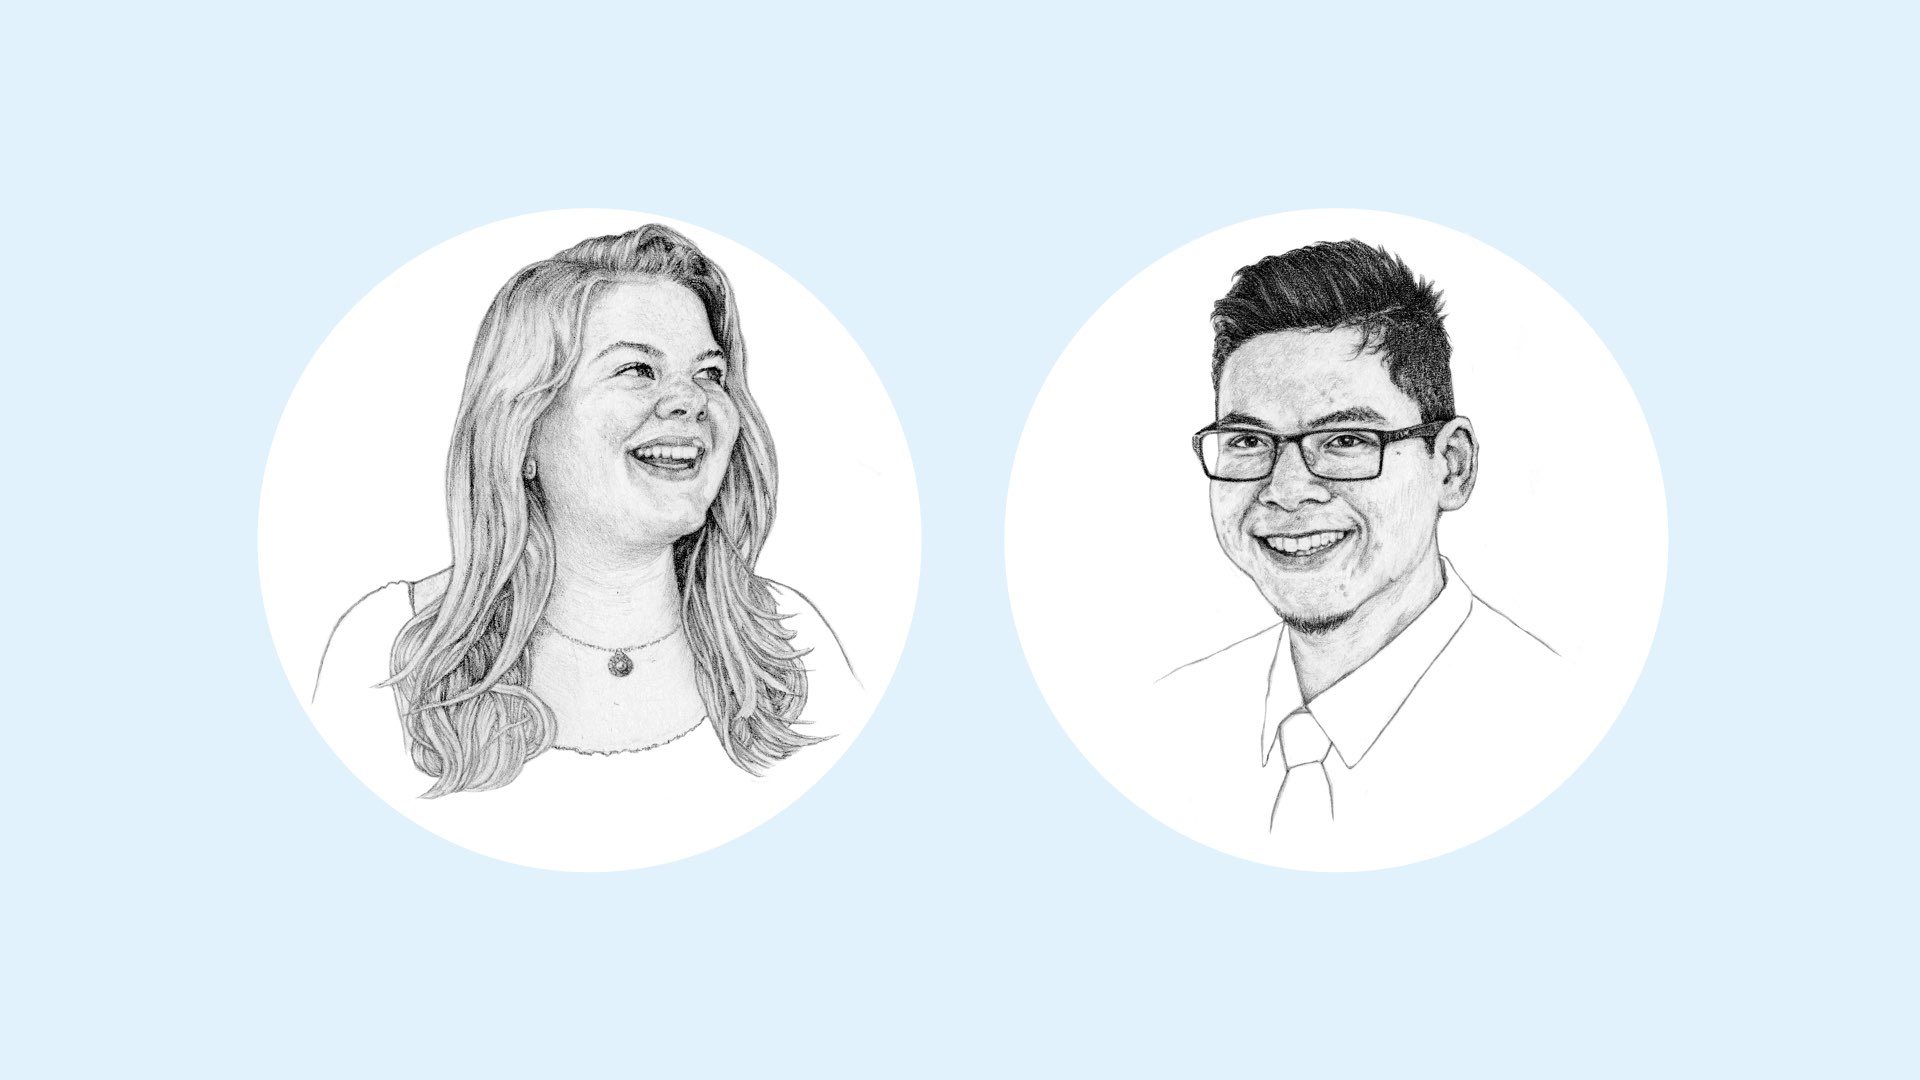 Black and white pencil illustrations of Kathy Kalata, a female Villanova student, and Boratha Tan, a male Villanova alumnus